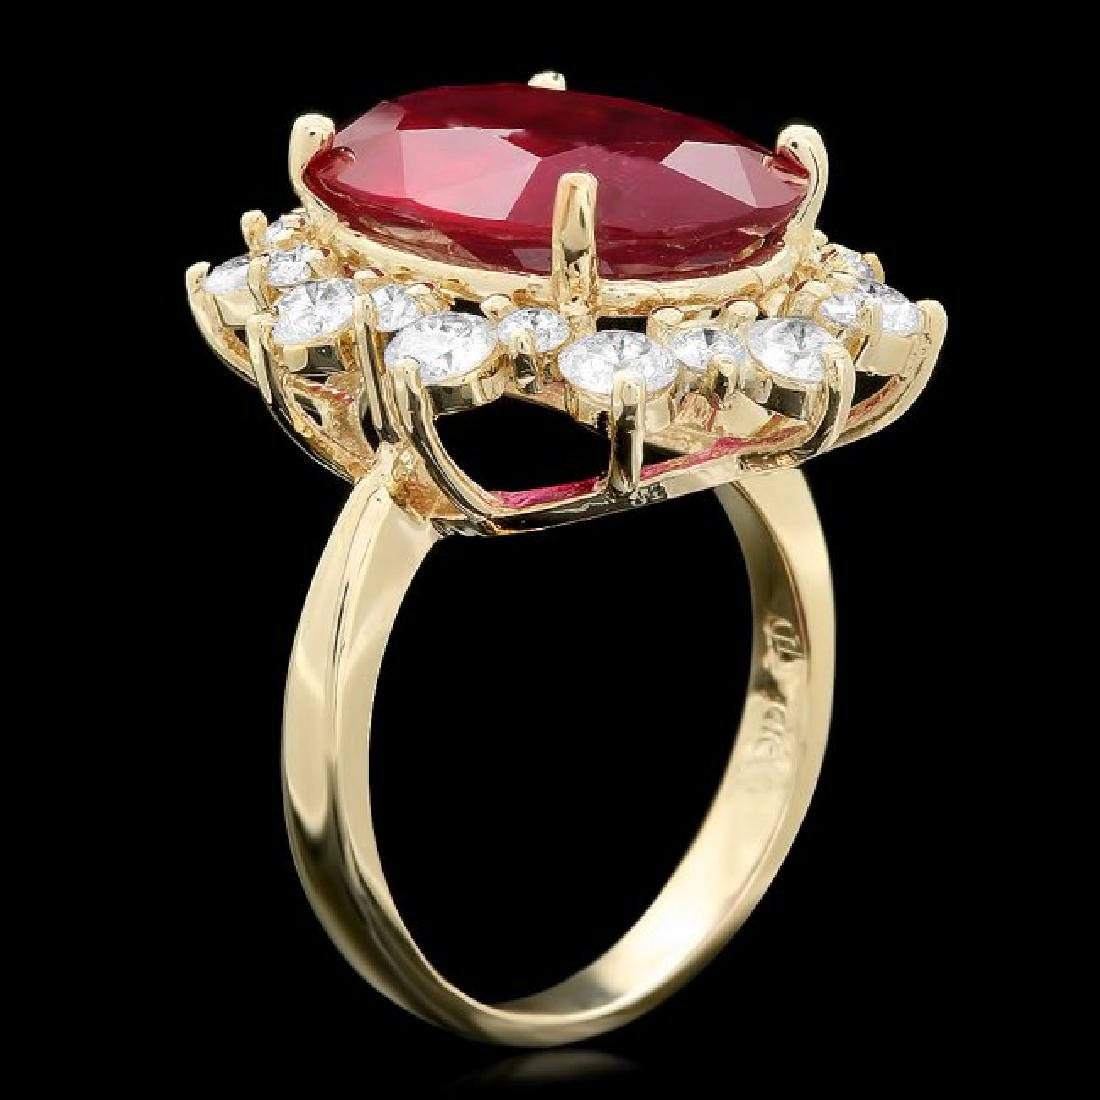 14k Yellow Gold 9.5ct Ruby 1.80ct Diamond Ring - 2